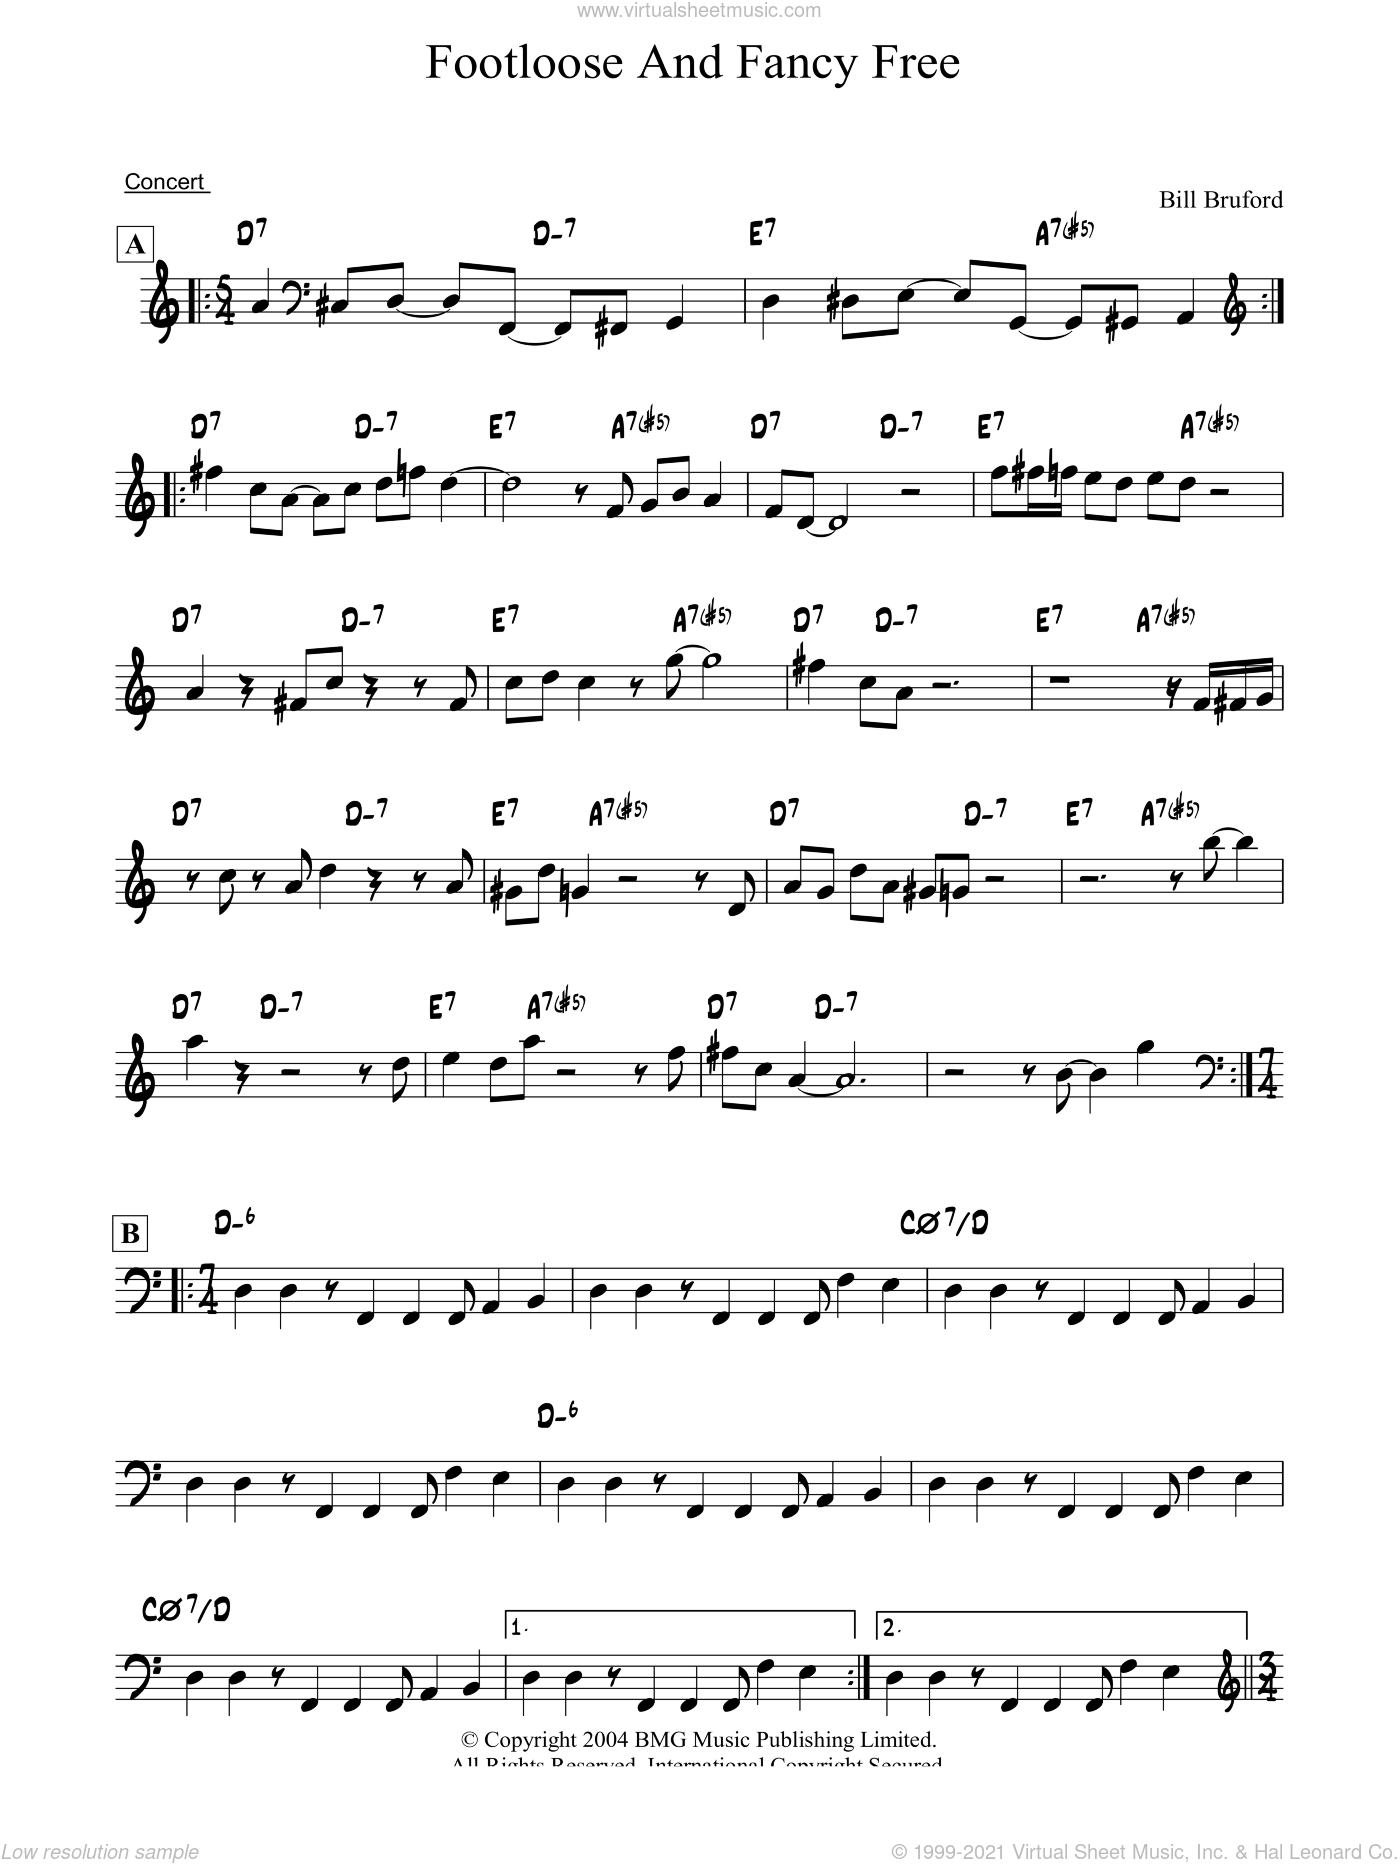 Footloose And Fancy Free sheet music for piano solo by Bill Bruford, intermediate skill level